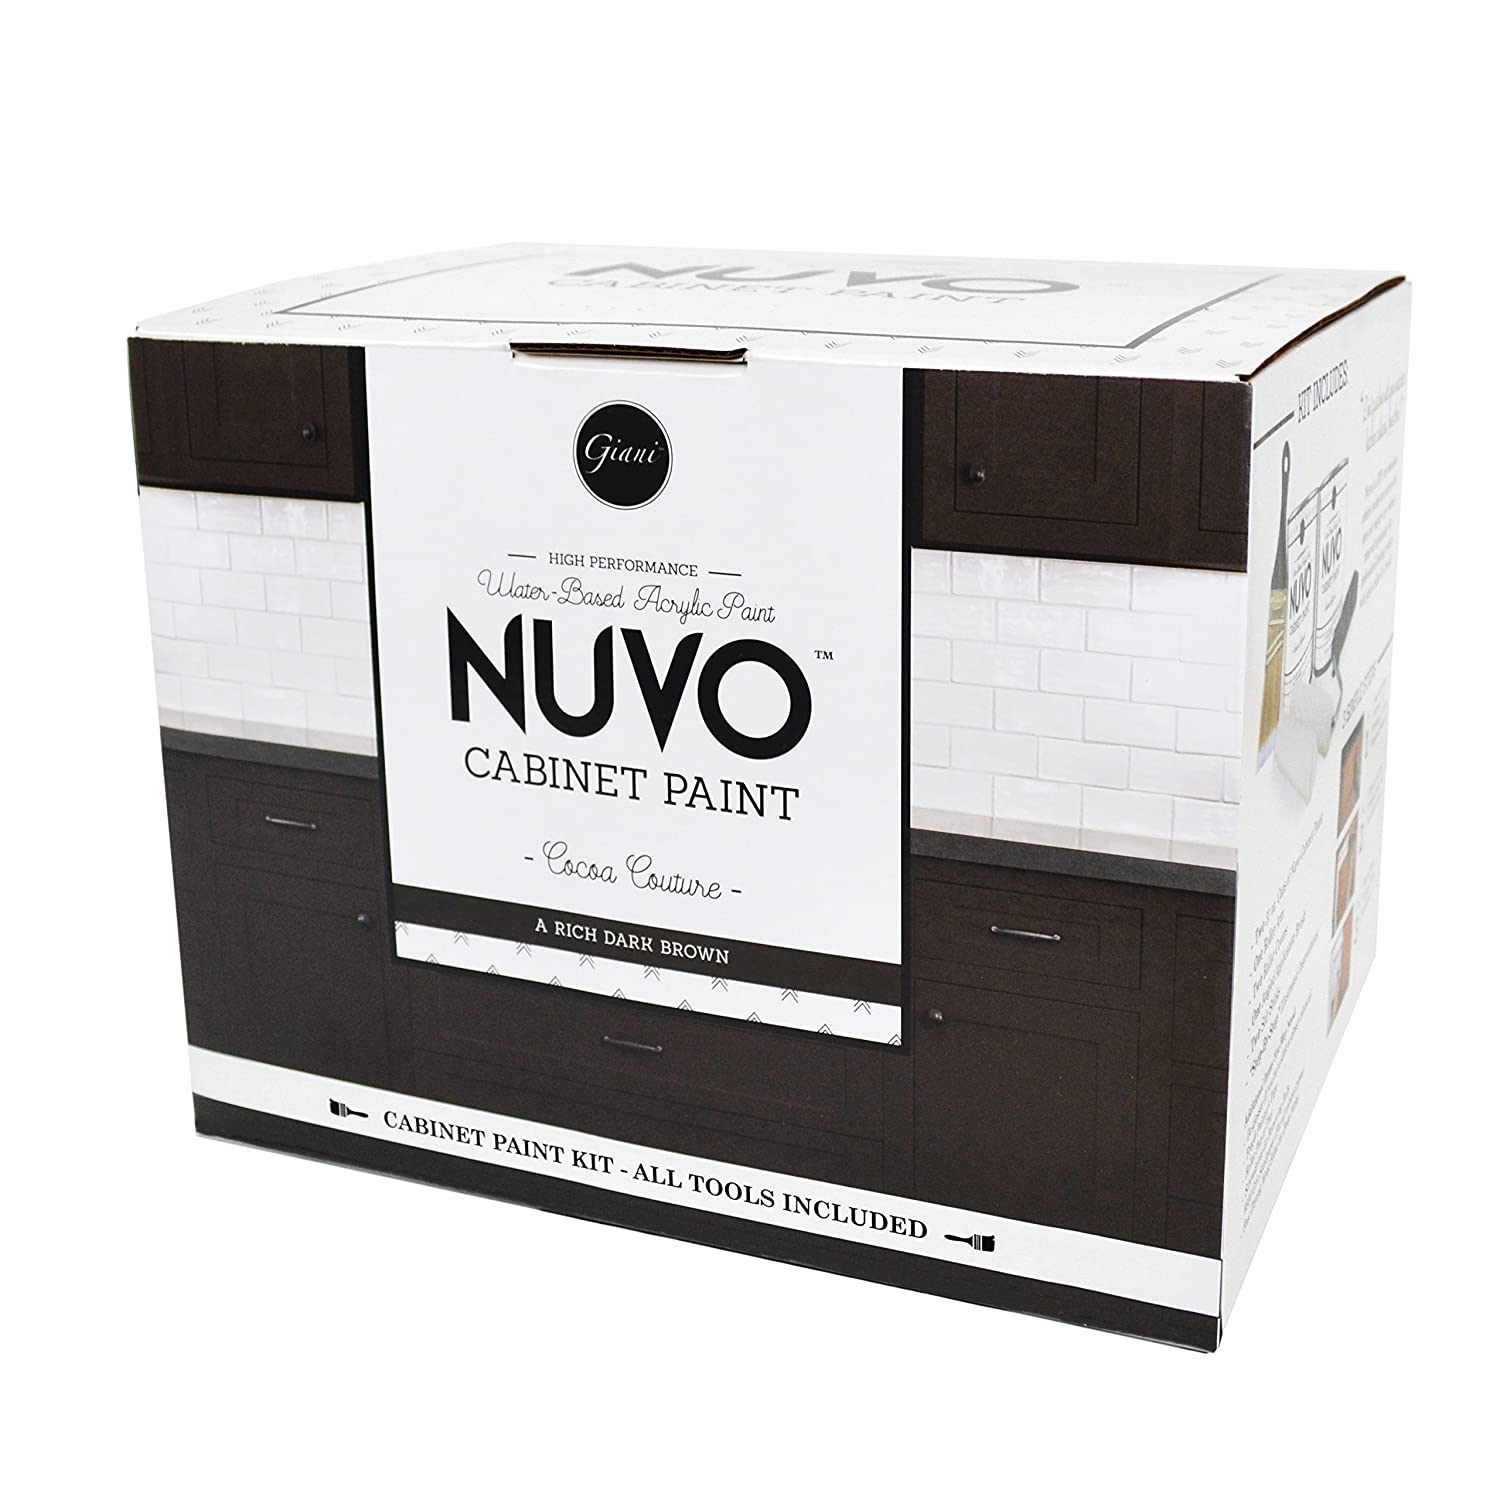 Nuvo Cocoa Couture Cabinet Paint Kit Giani Granite